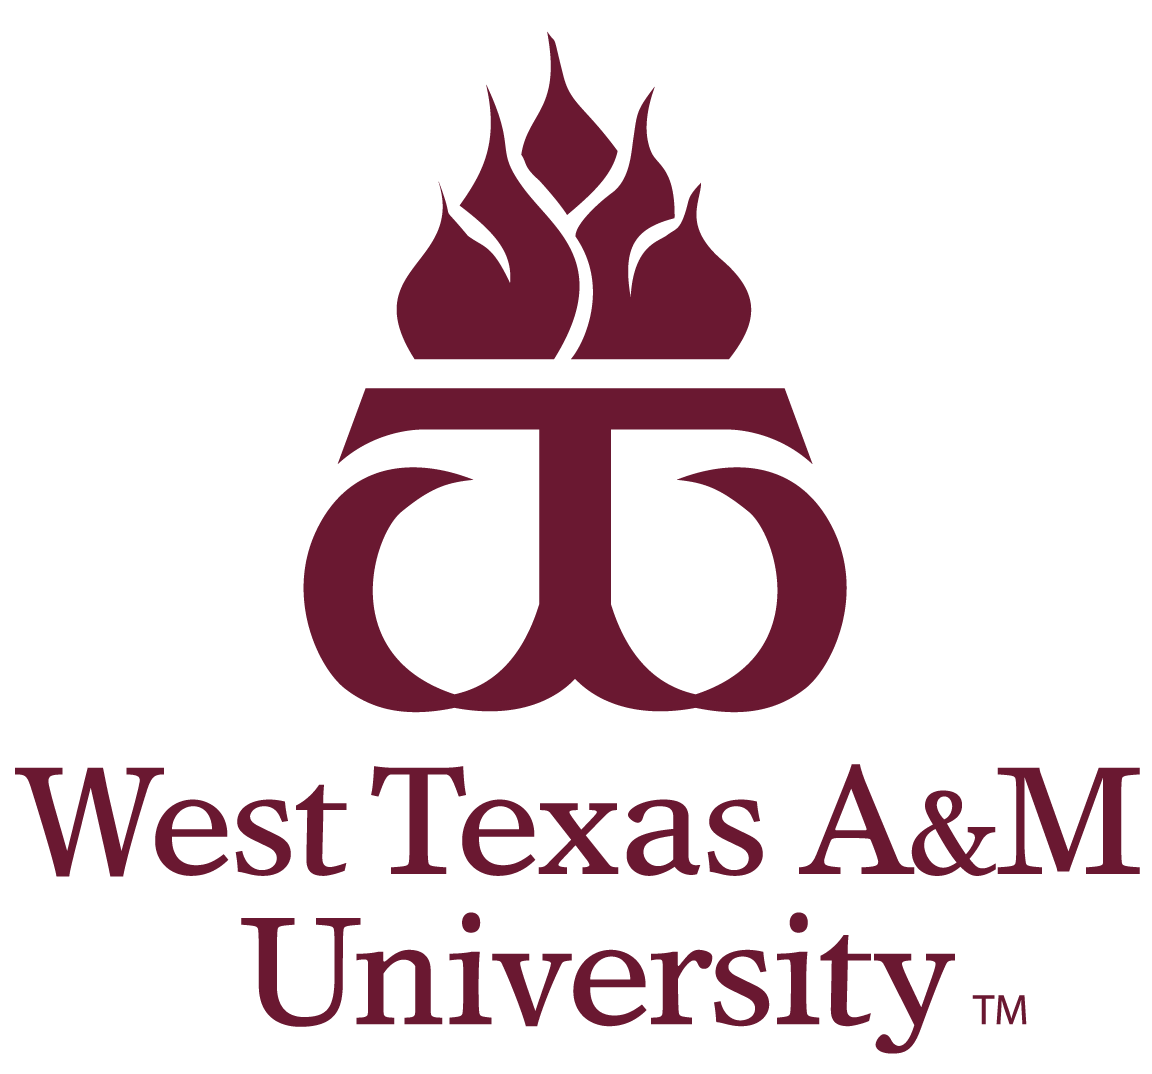 West Texas A&M University